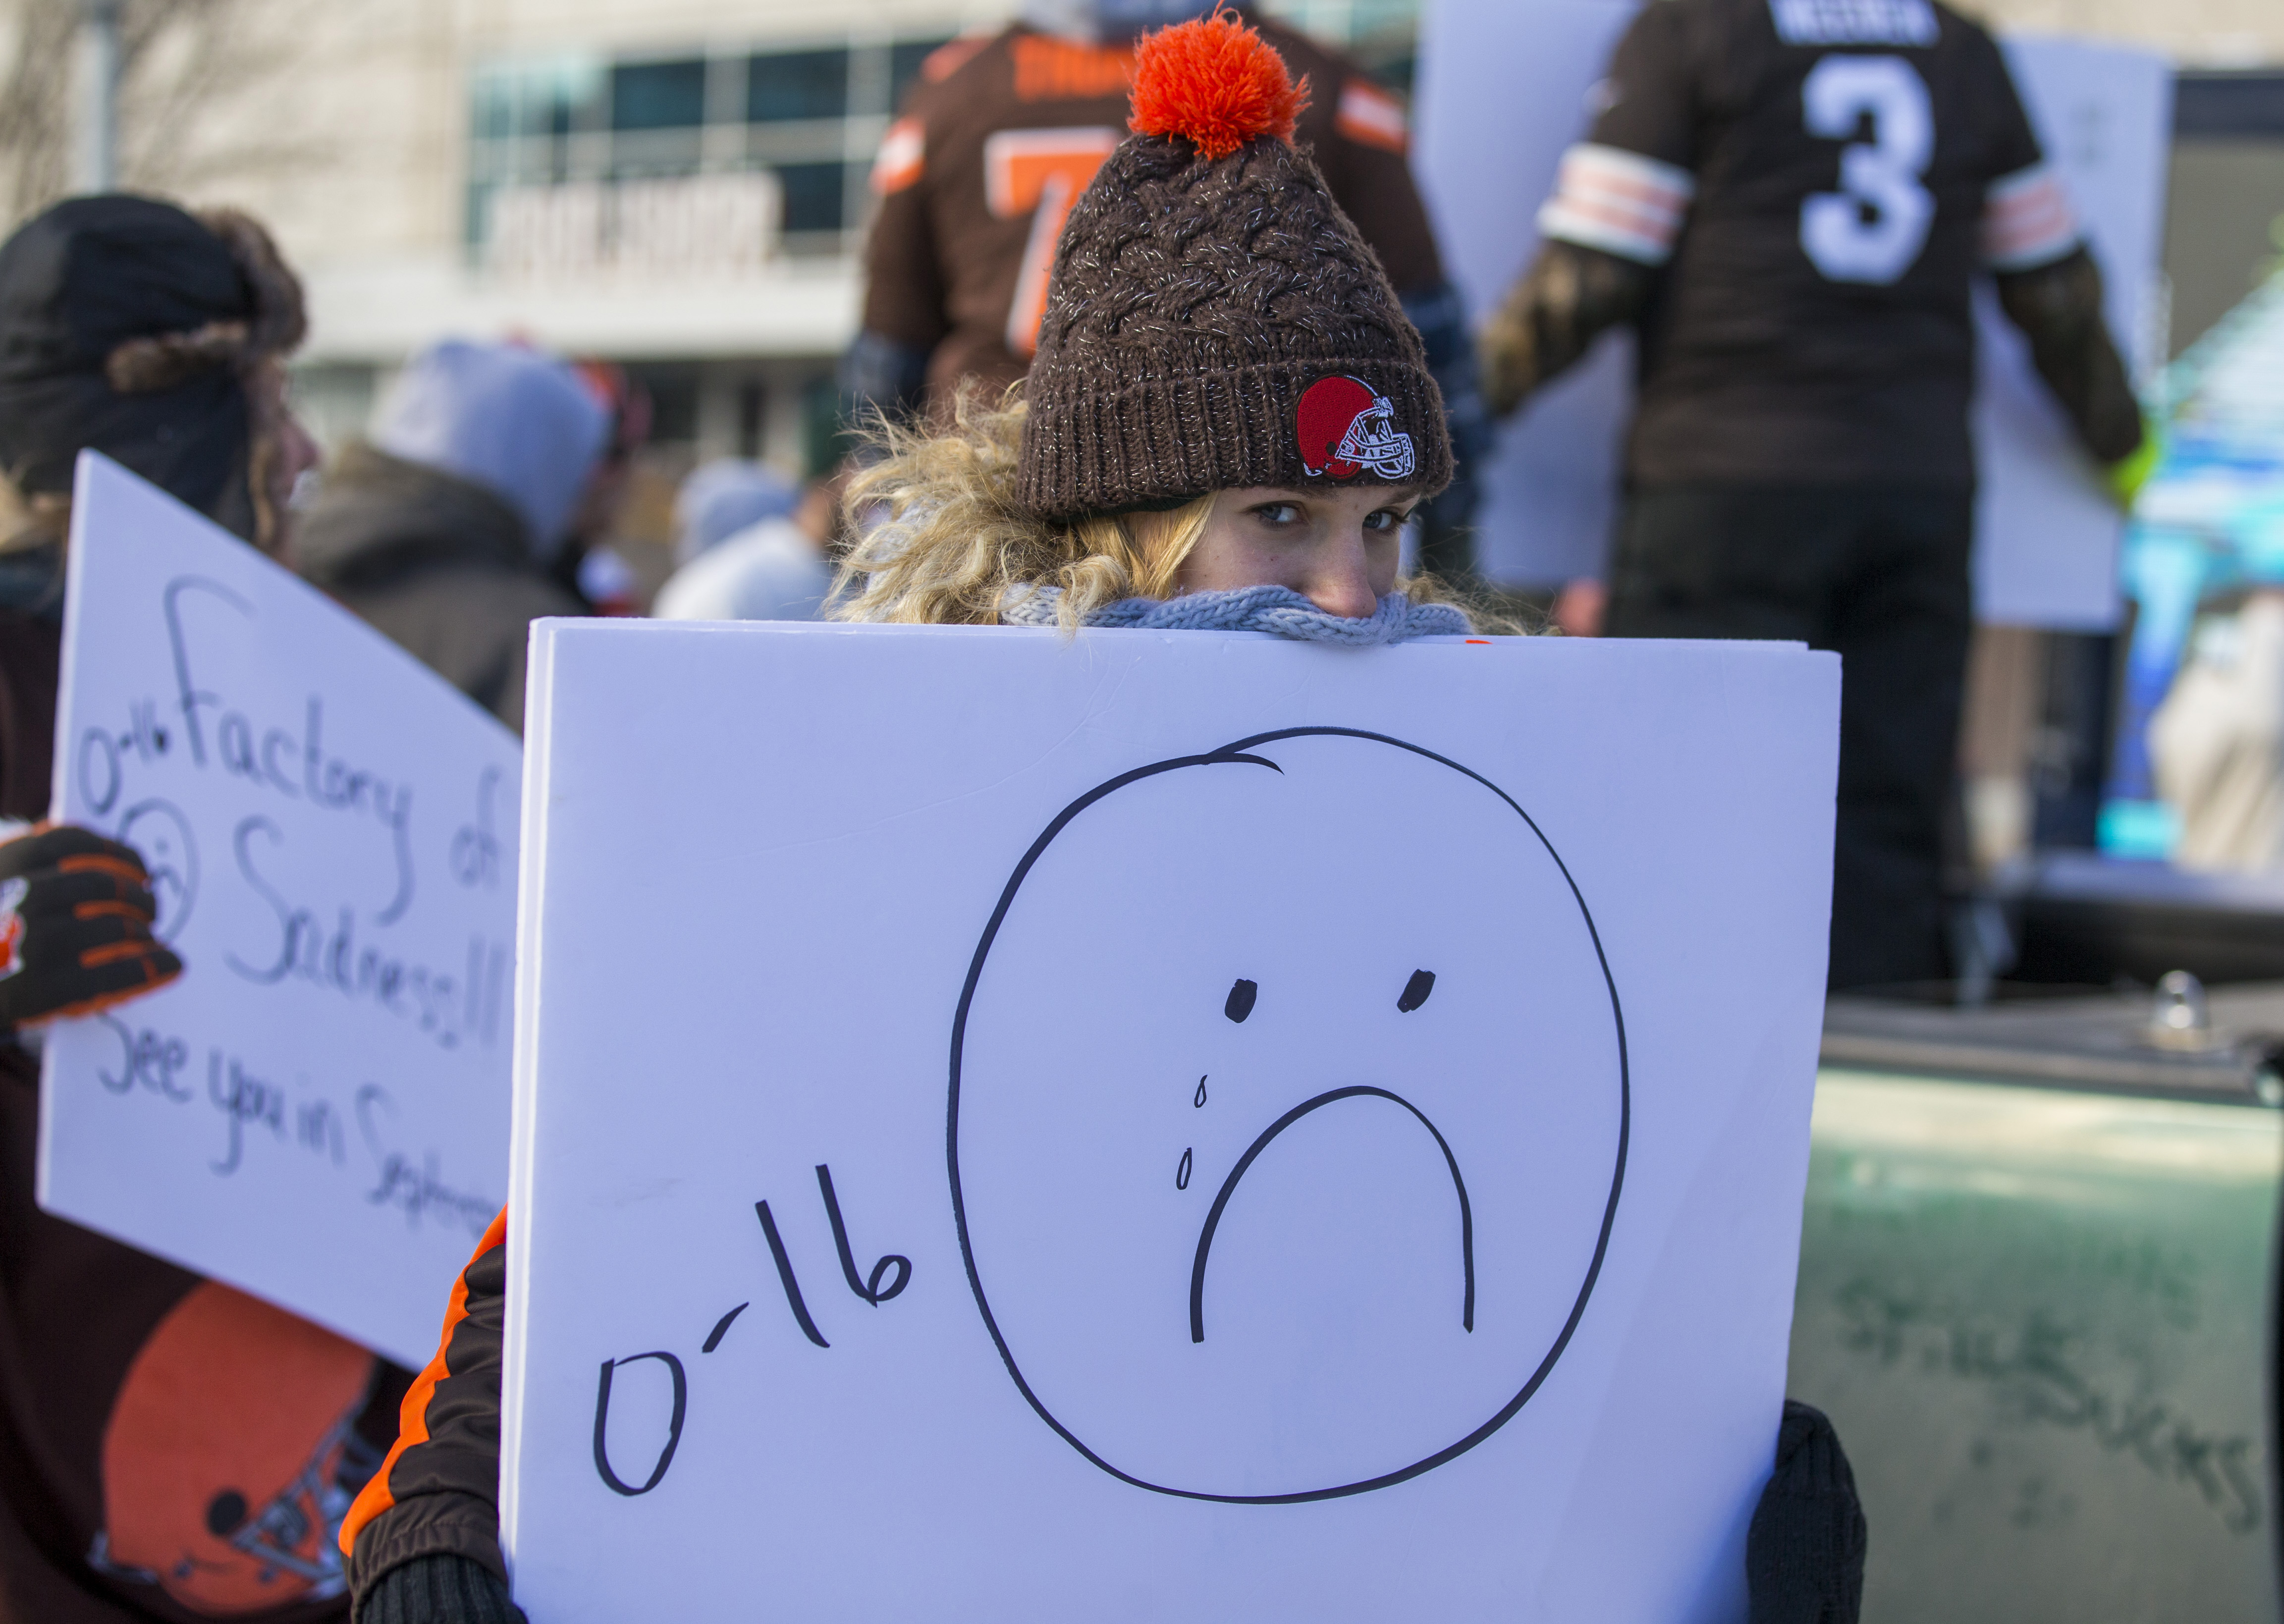 Jan 6, 2018; Cleveland, OH, USA; Noa Szylakowski from North Ridgeville, OH, carries a sign in the parade for the the Cleveland Browns 0-16 perfect season outside FirstEnergy Stadium. Mandatory Credit: Scott R. Galvin-USA TODAY Sports